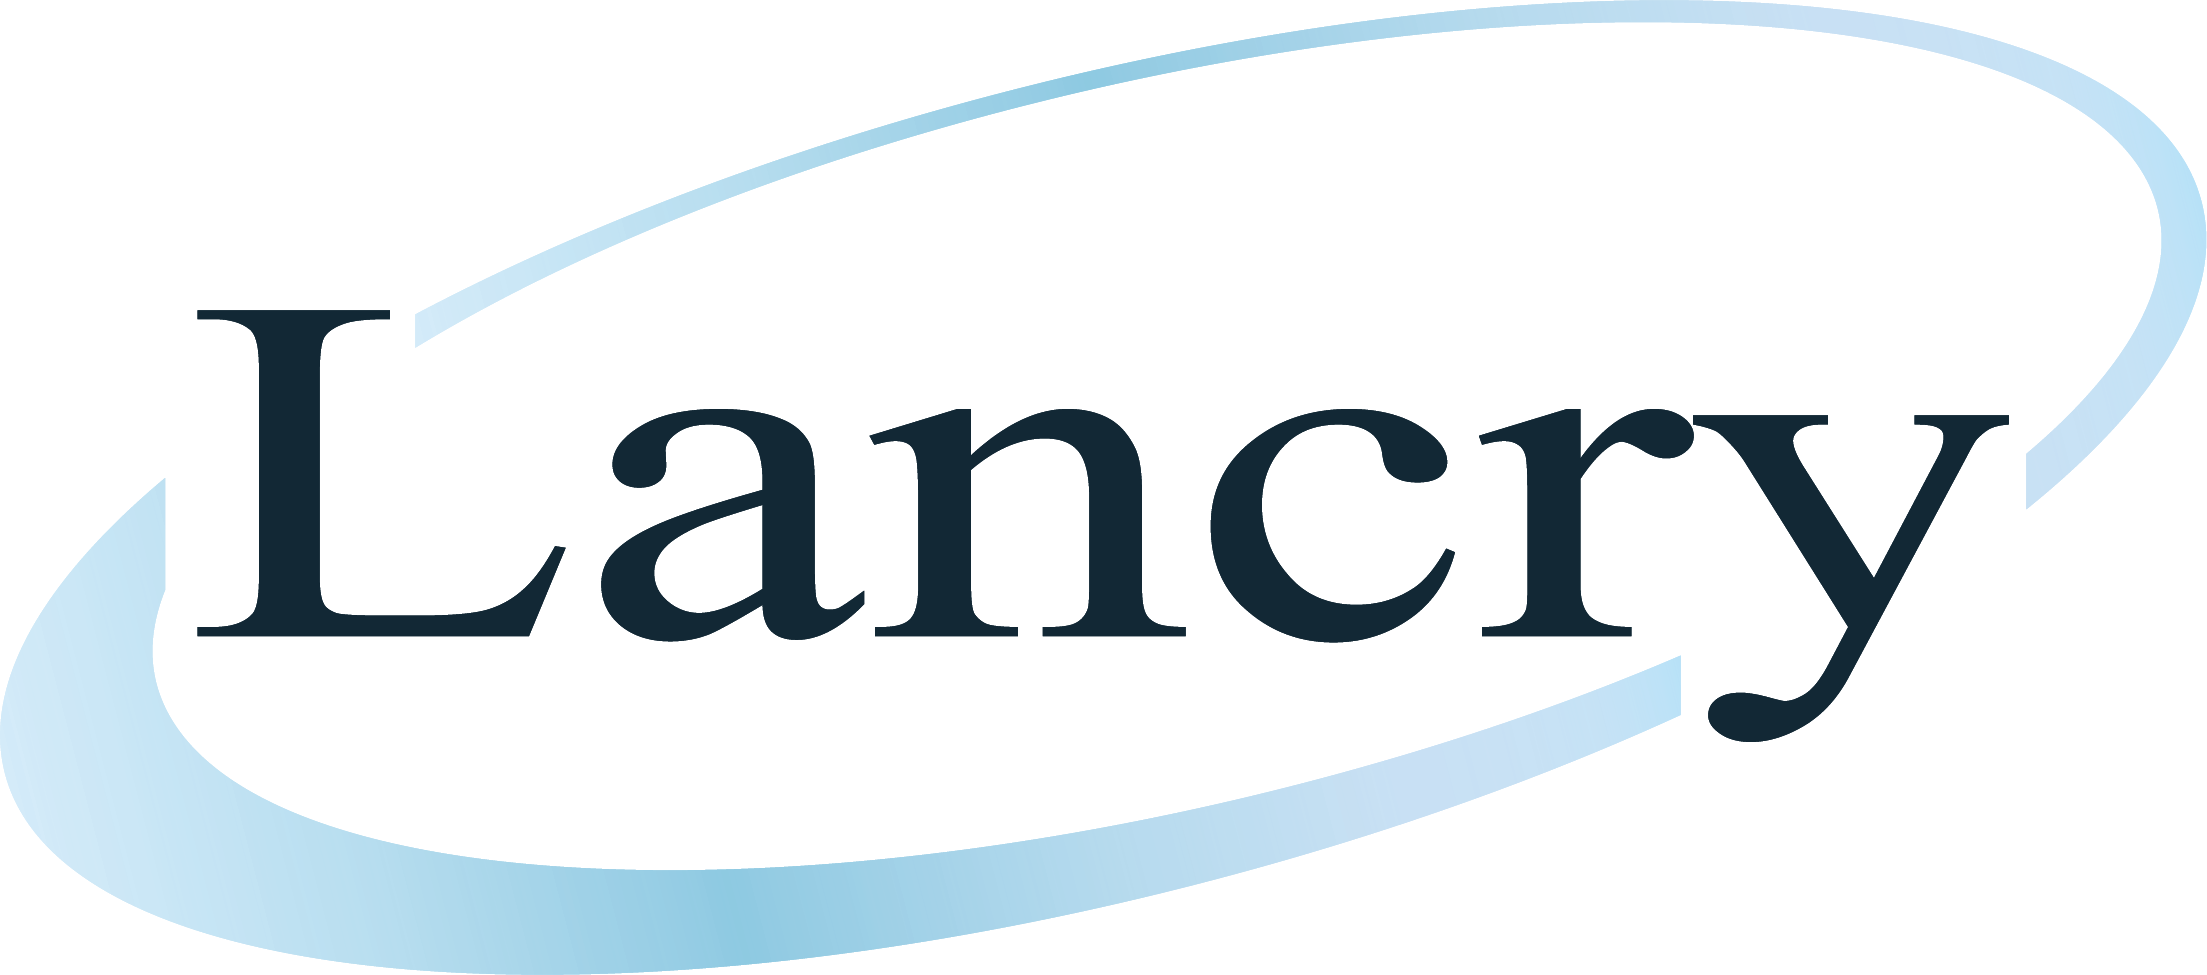 LANCRY PROTECTION SECURITE (GROUPE ATALIAN) - Facilities, site du Facility management